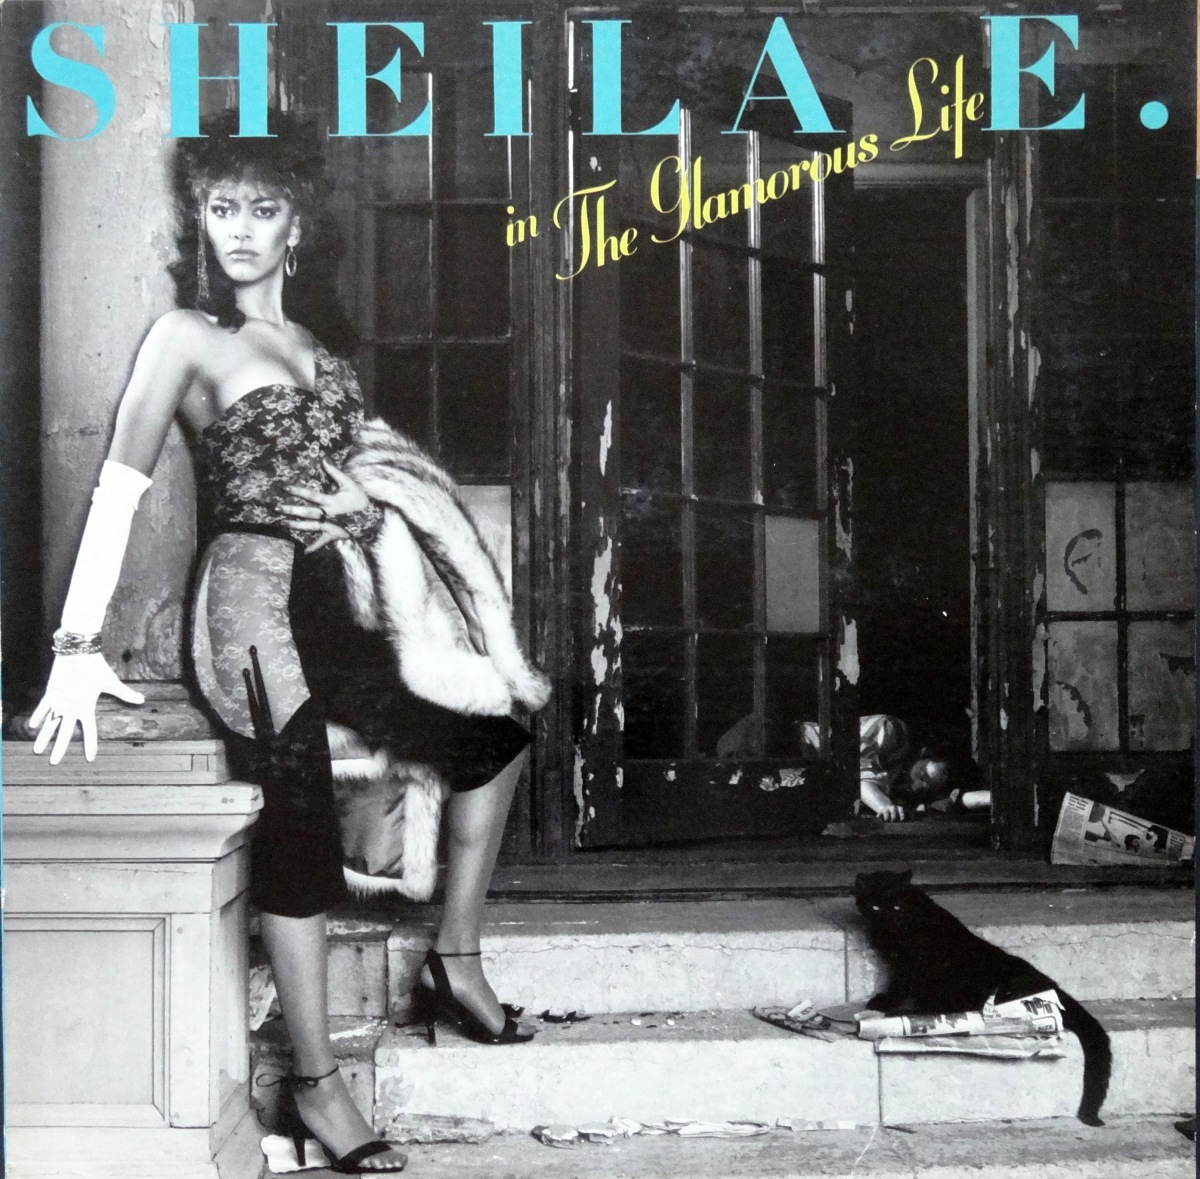 From The Stacks: Sheila E., 'The Glamorous Life' (With Promotional Material)